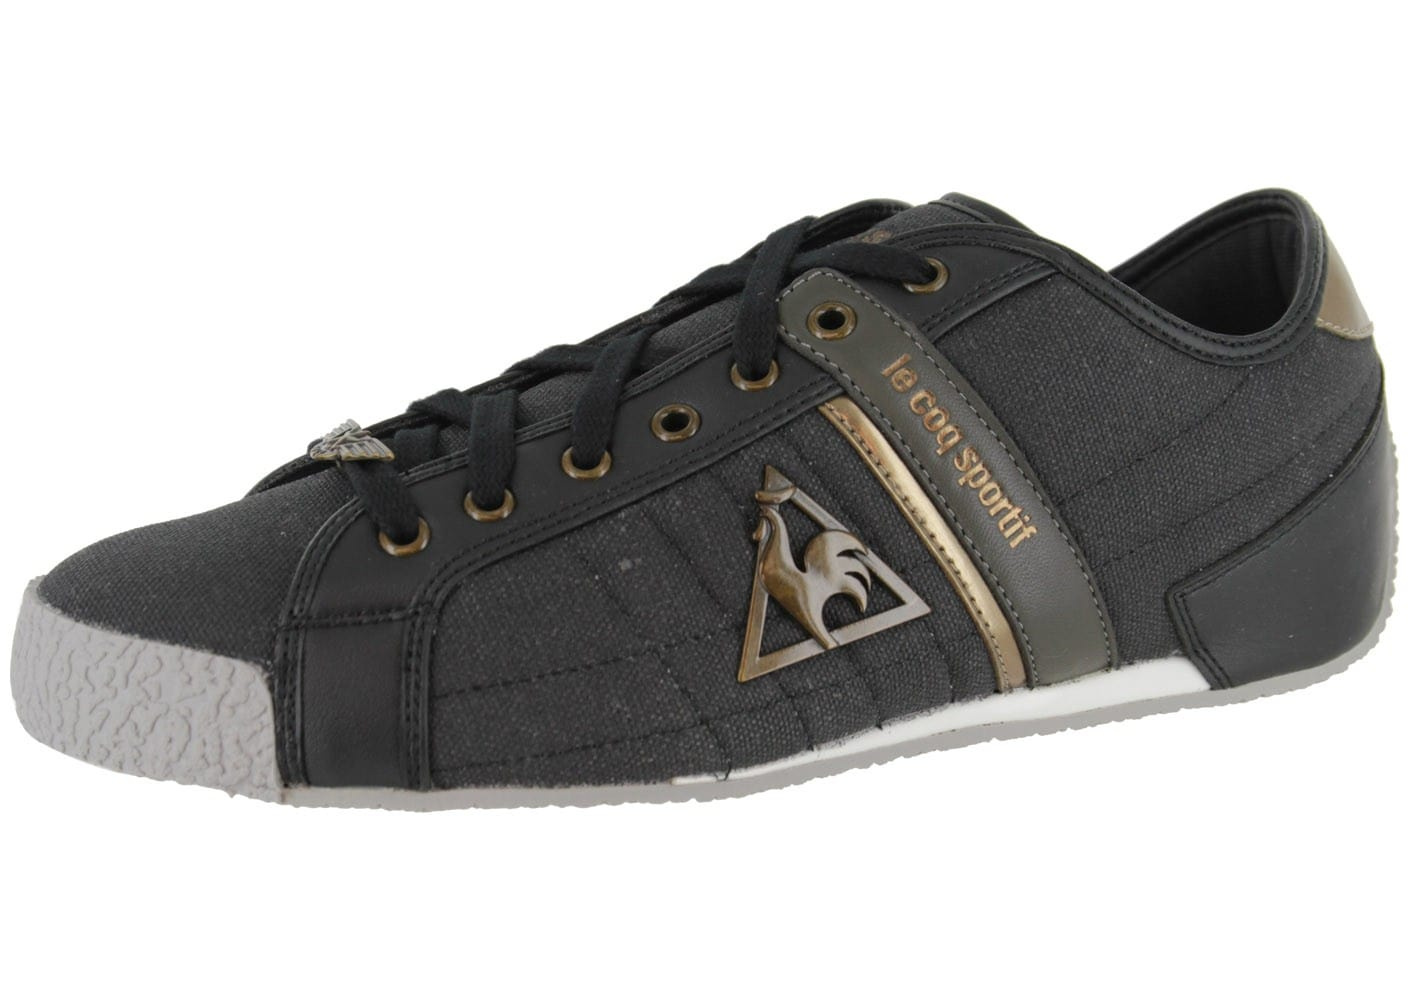 le coq sportif escrime toile noire chaussures homme chausport. Black Bedroom Furniture Sets. Home Design Ideas